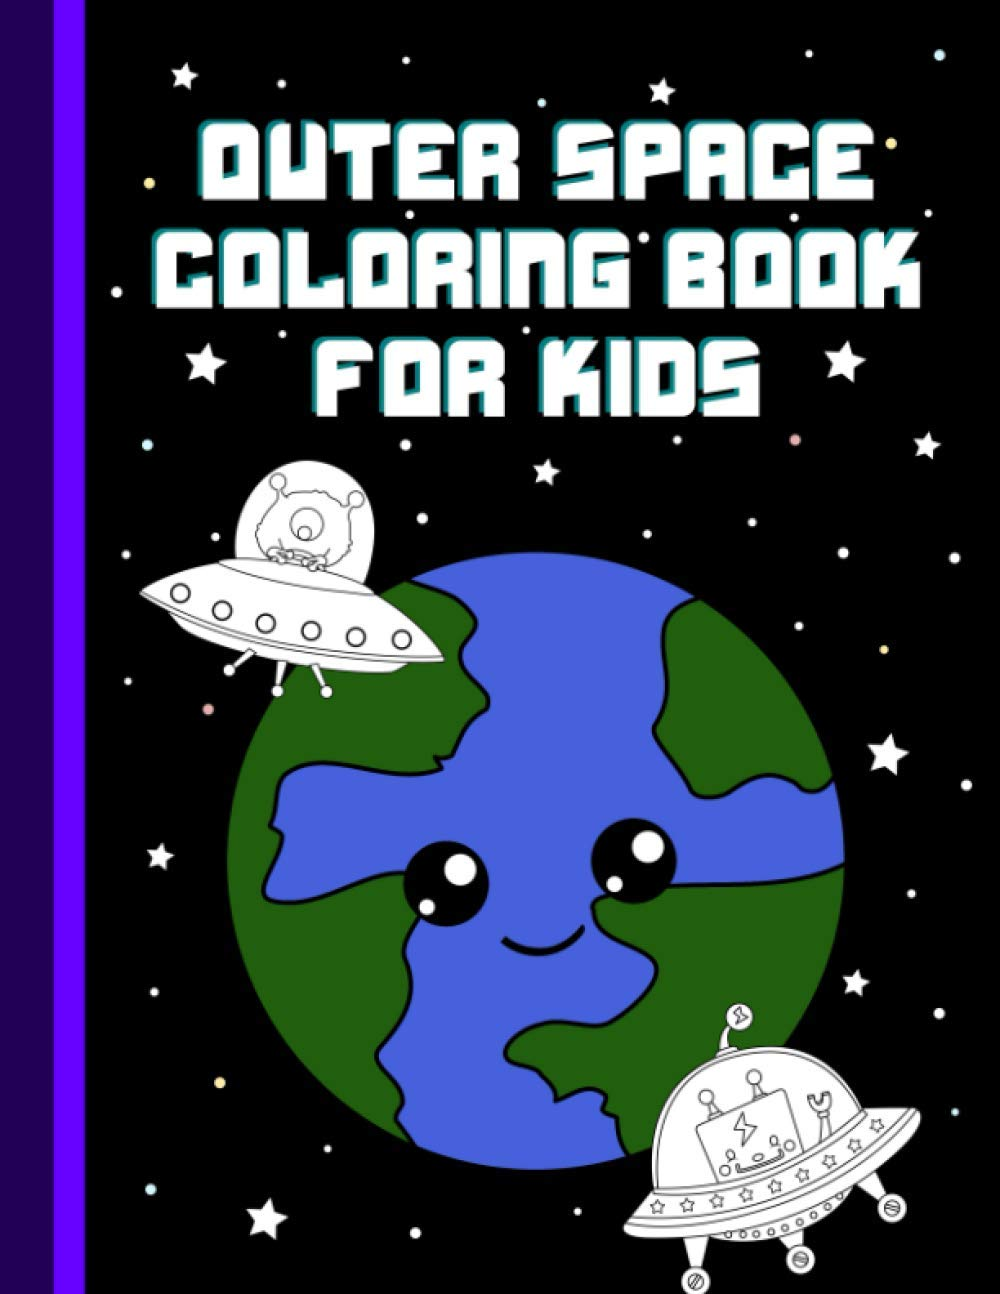 Outer Space Coloring Book For Kids: Planets, Robots, Aliens, UFOs, Spaceships, and more!